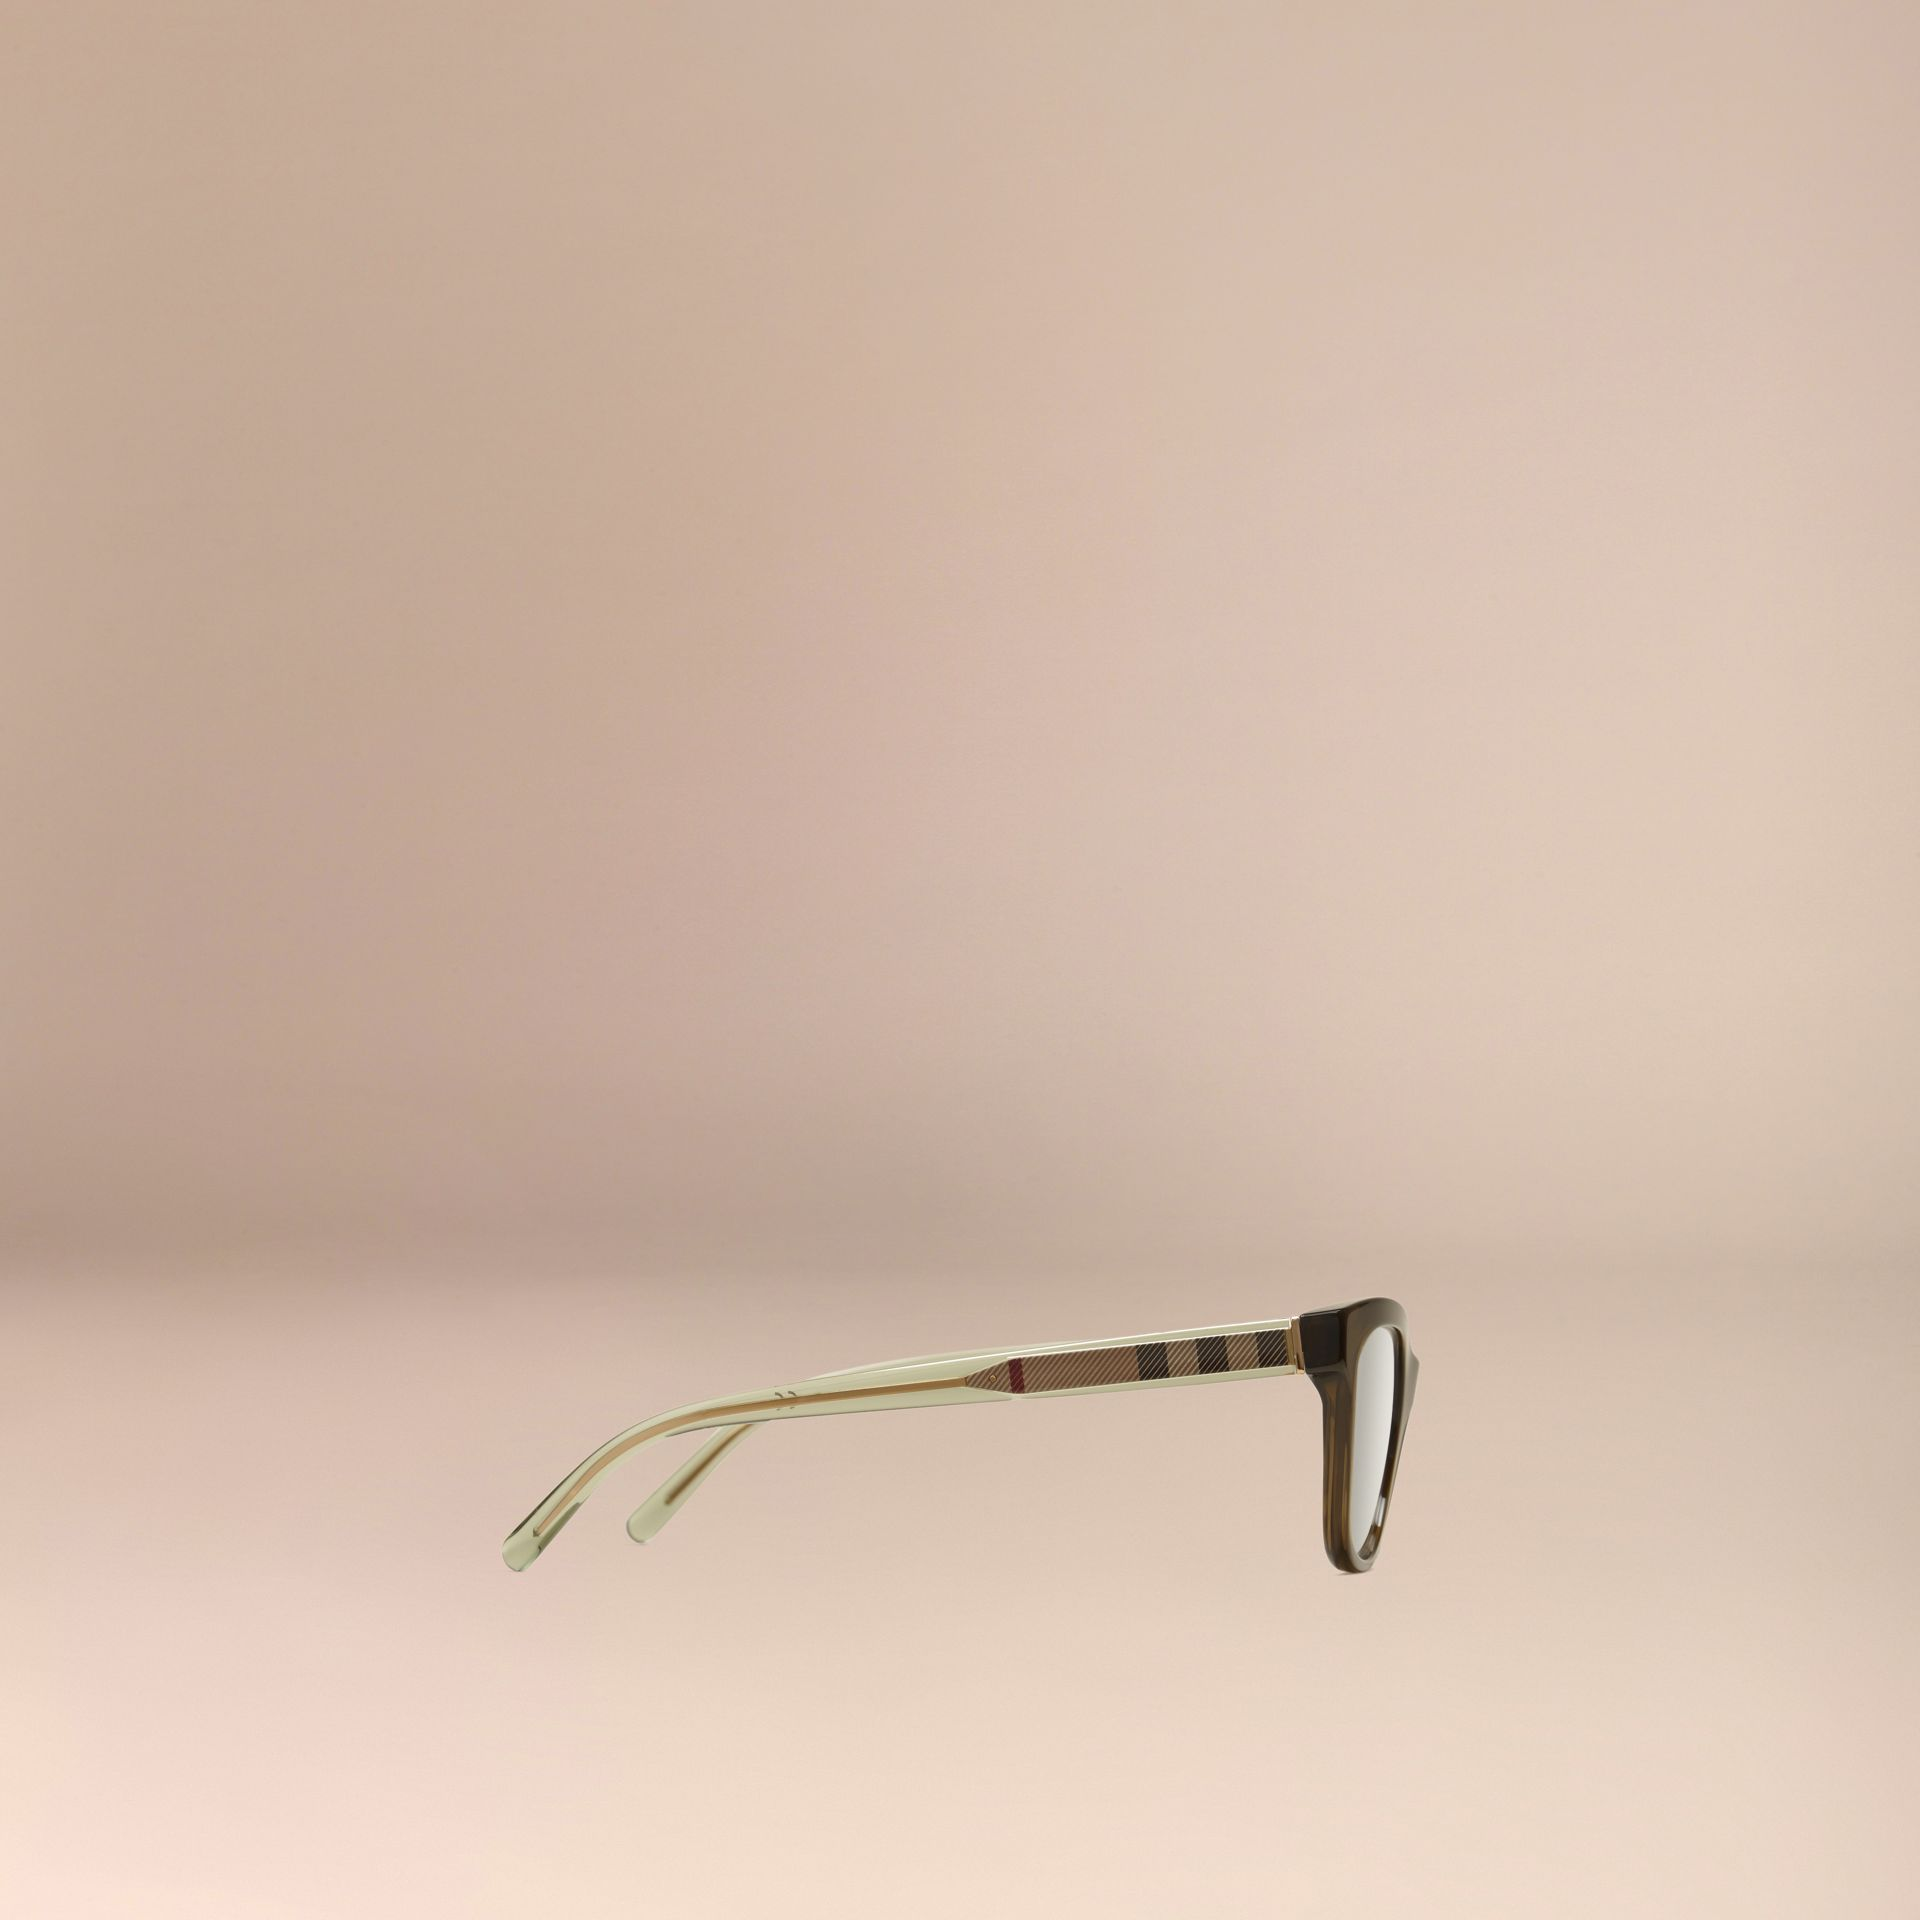 Olive Check Detail Oval Optical Frames Olive - gallery image 4